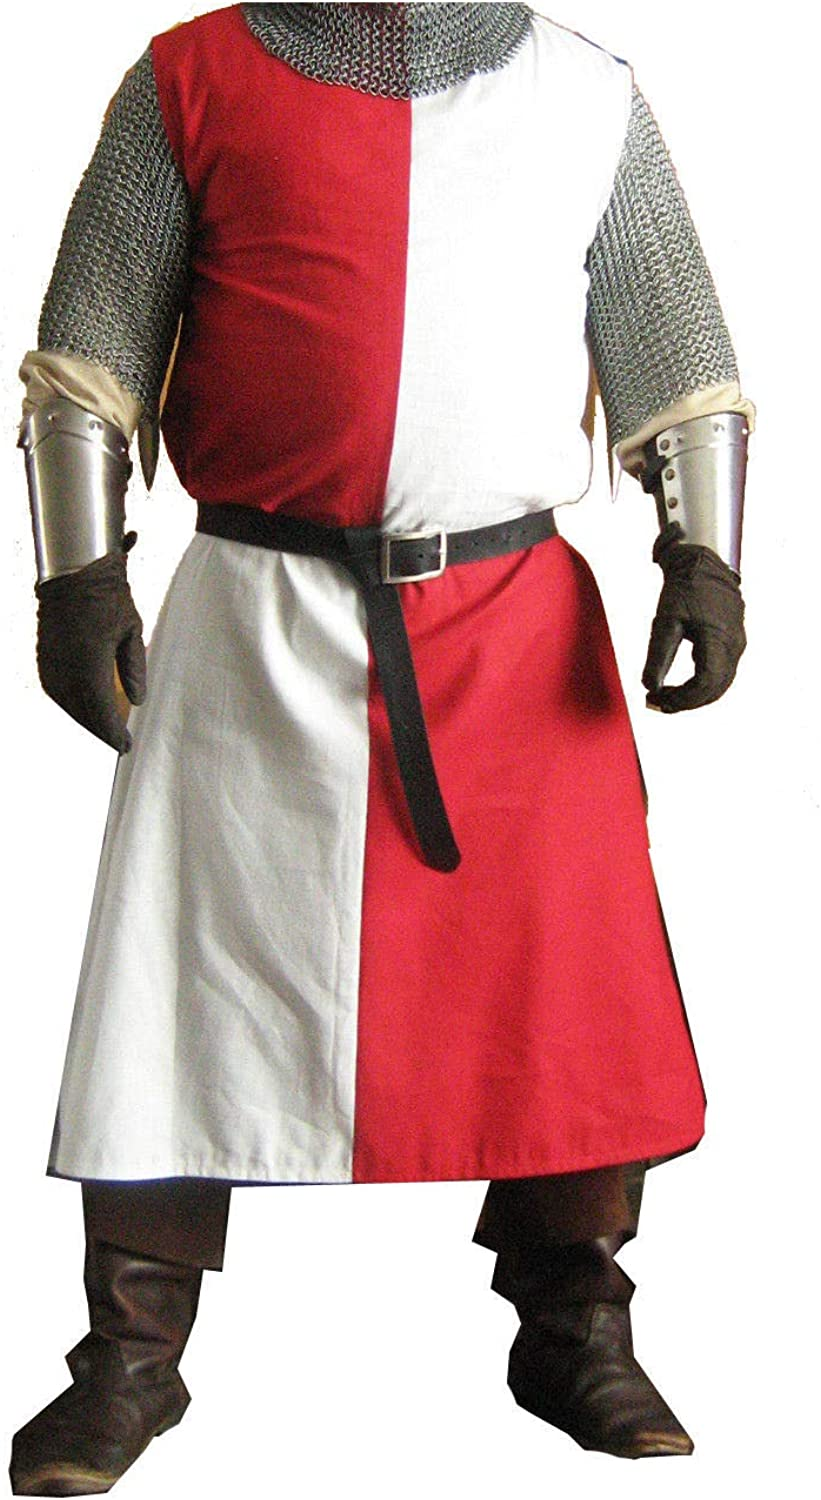 QUALITYMUSICSHOP Medieval Knight Crusader Tunic White&Black colors Without Sleeveles Reenactment